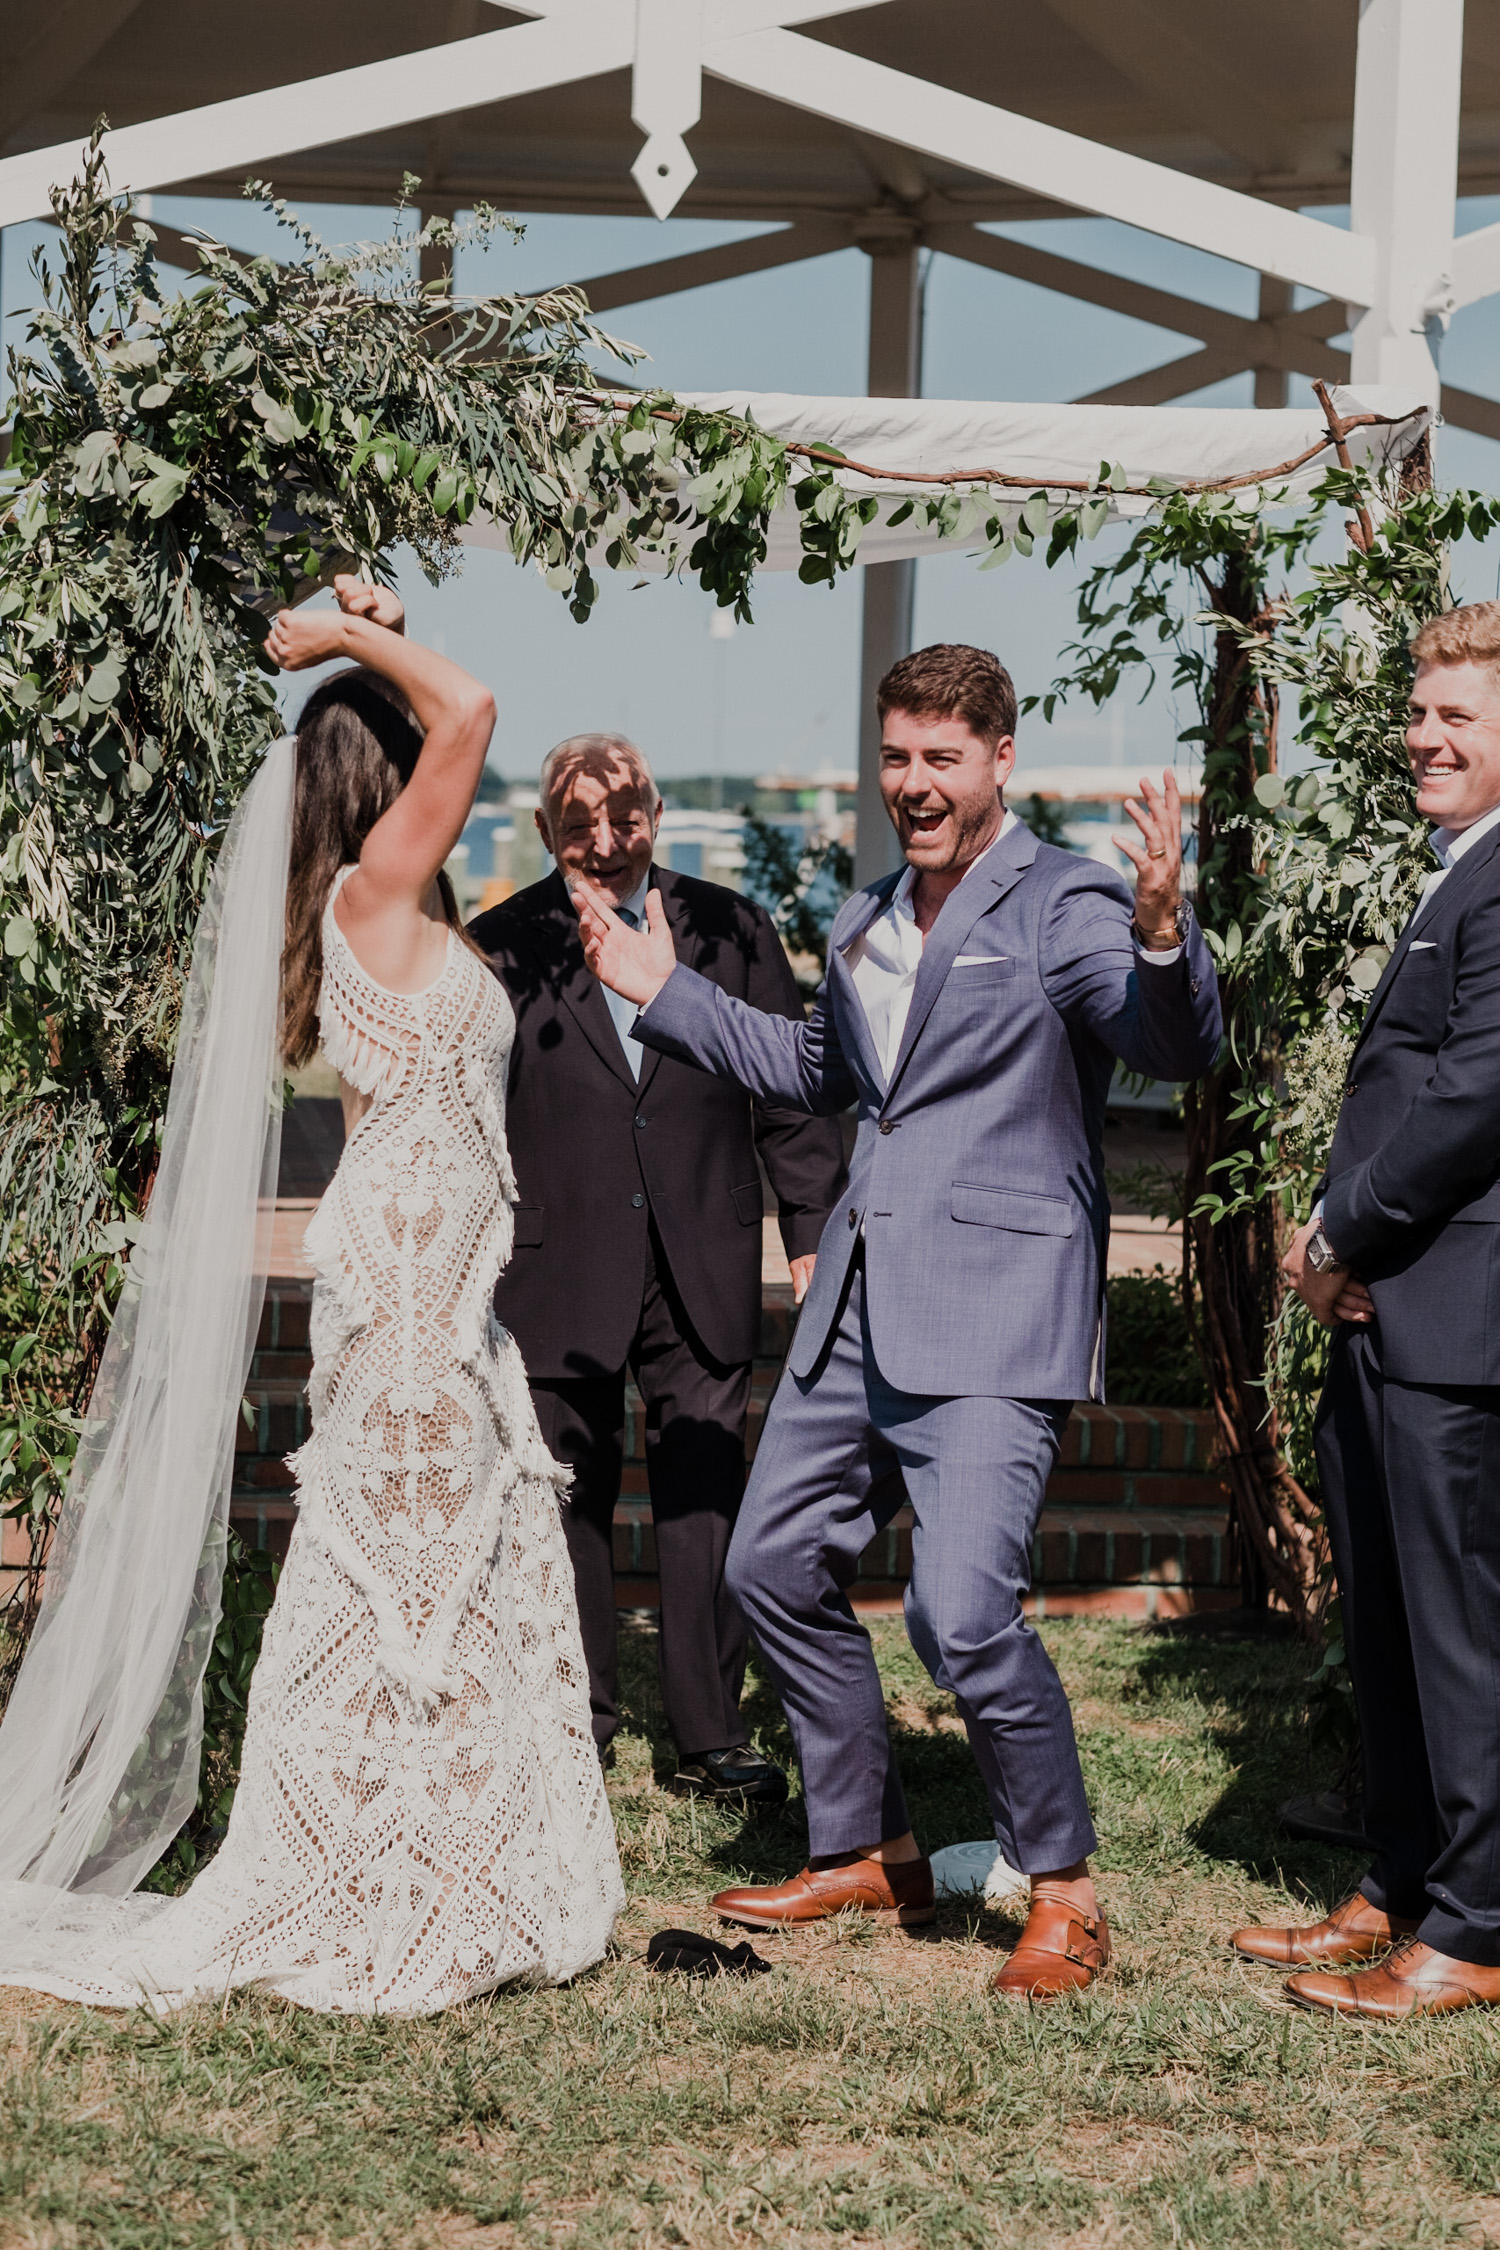 bride and groom lift their arms in celebration after the breaking of the glass at the end of the wedding